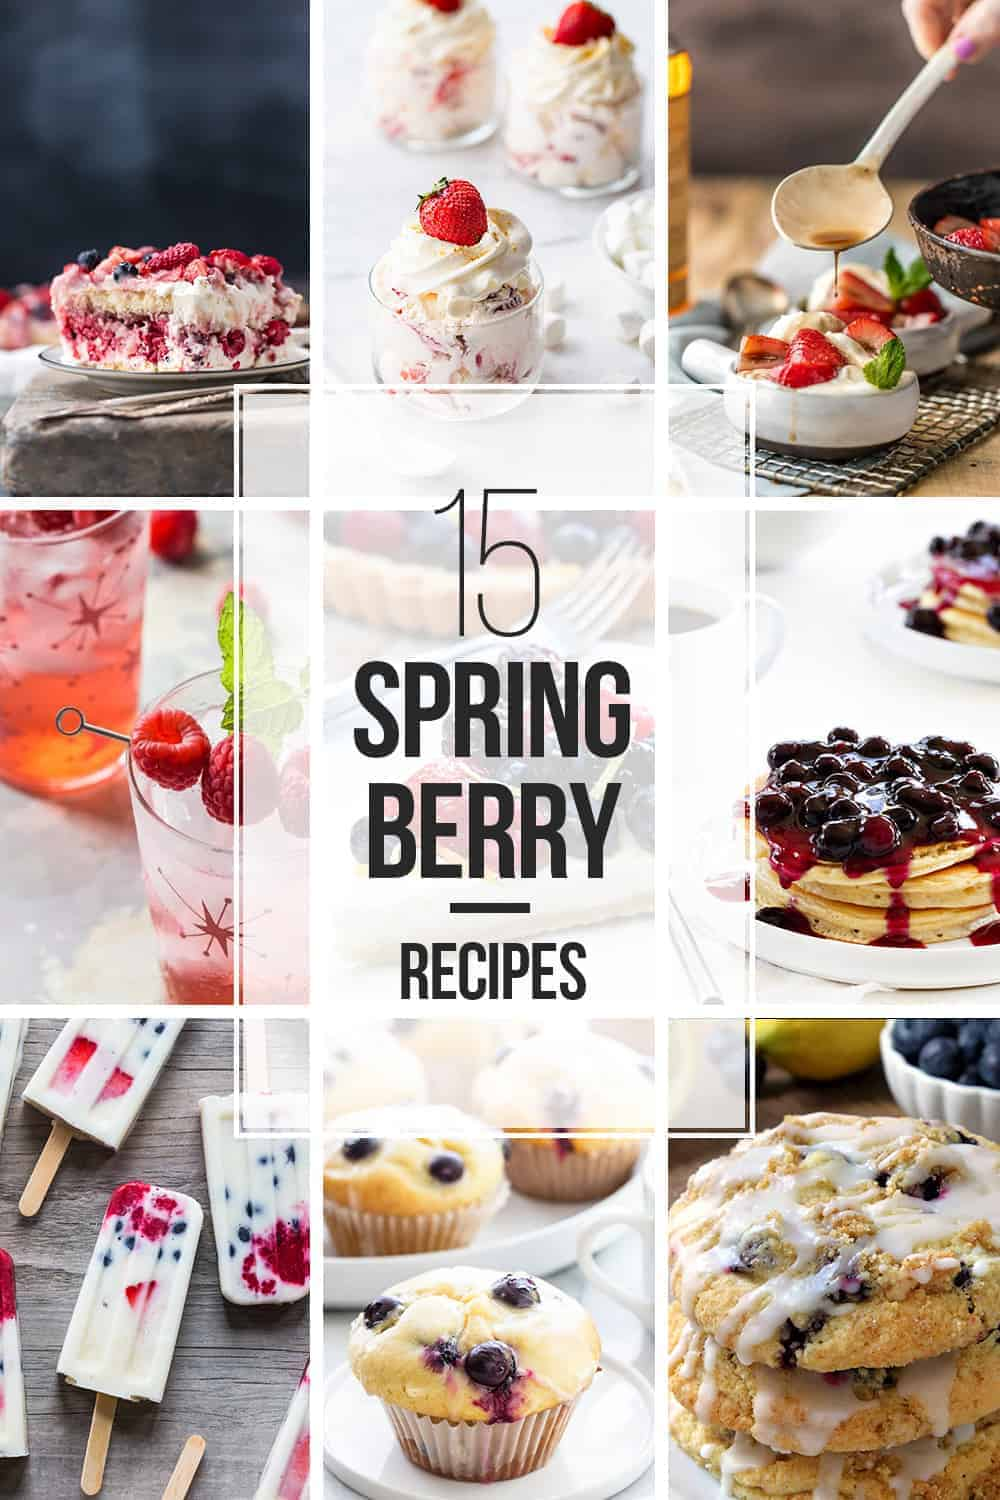 These 15 fresh berry recipes will have you welcoming spring with open arms and full stomachs!